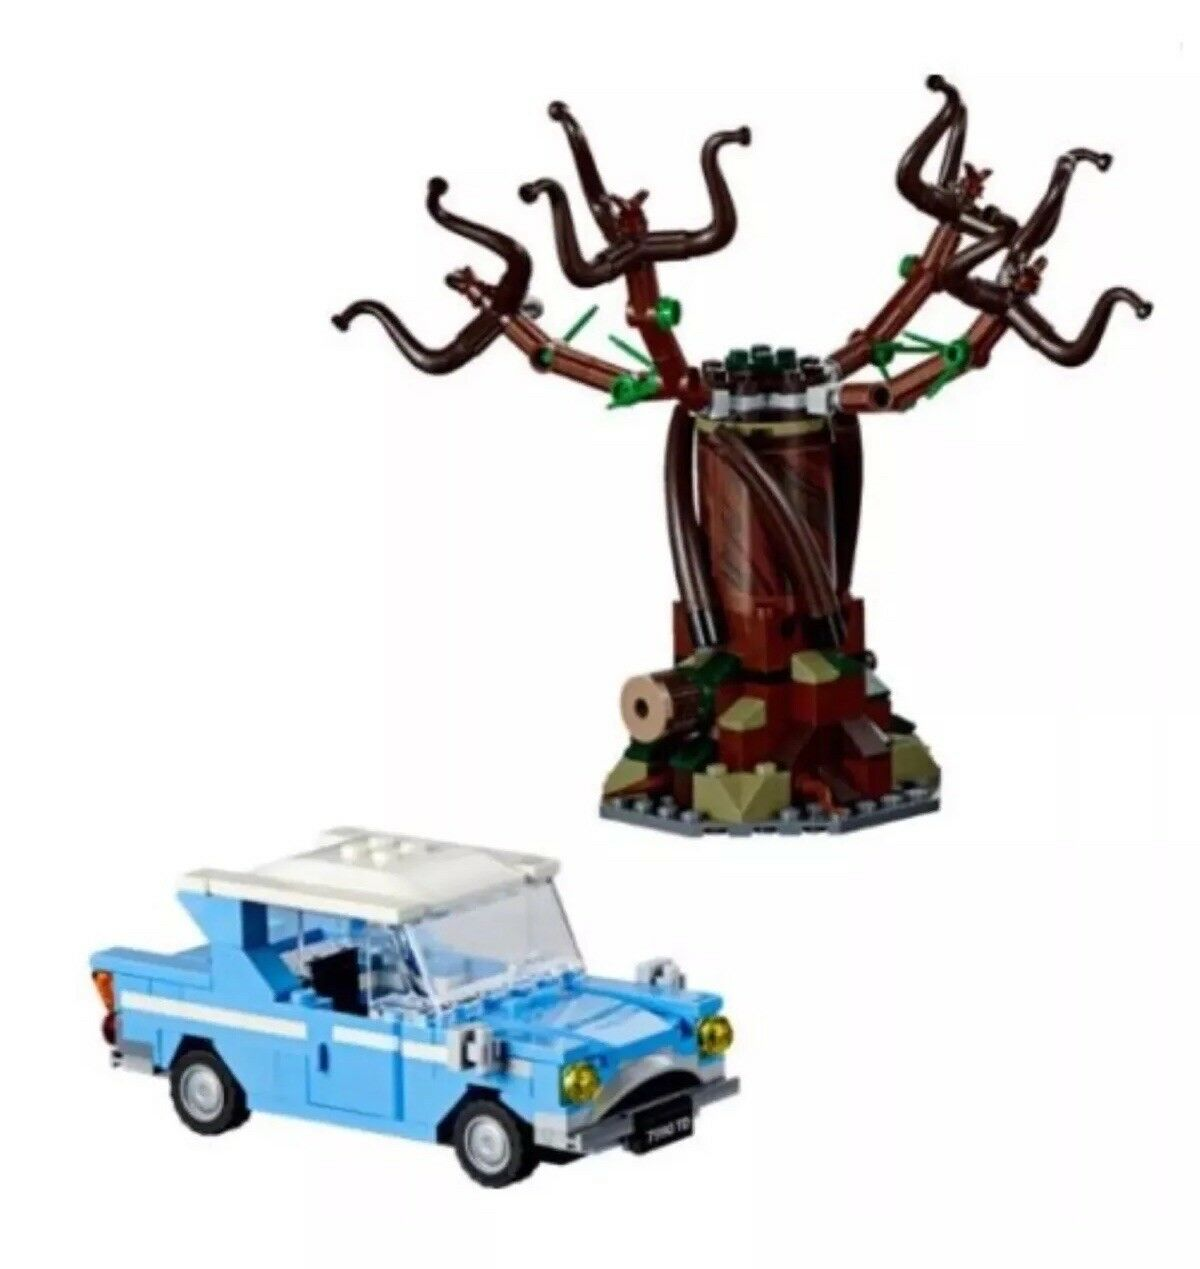 LEGO HARRY POTTER WHOMPING WILLOW & FORD ANGLIA ONLY SPLIT FROM SET 75953.